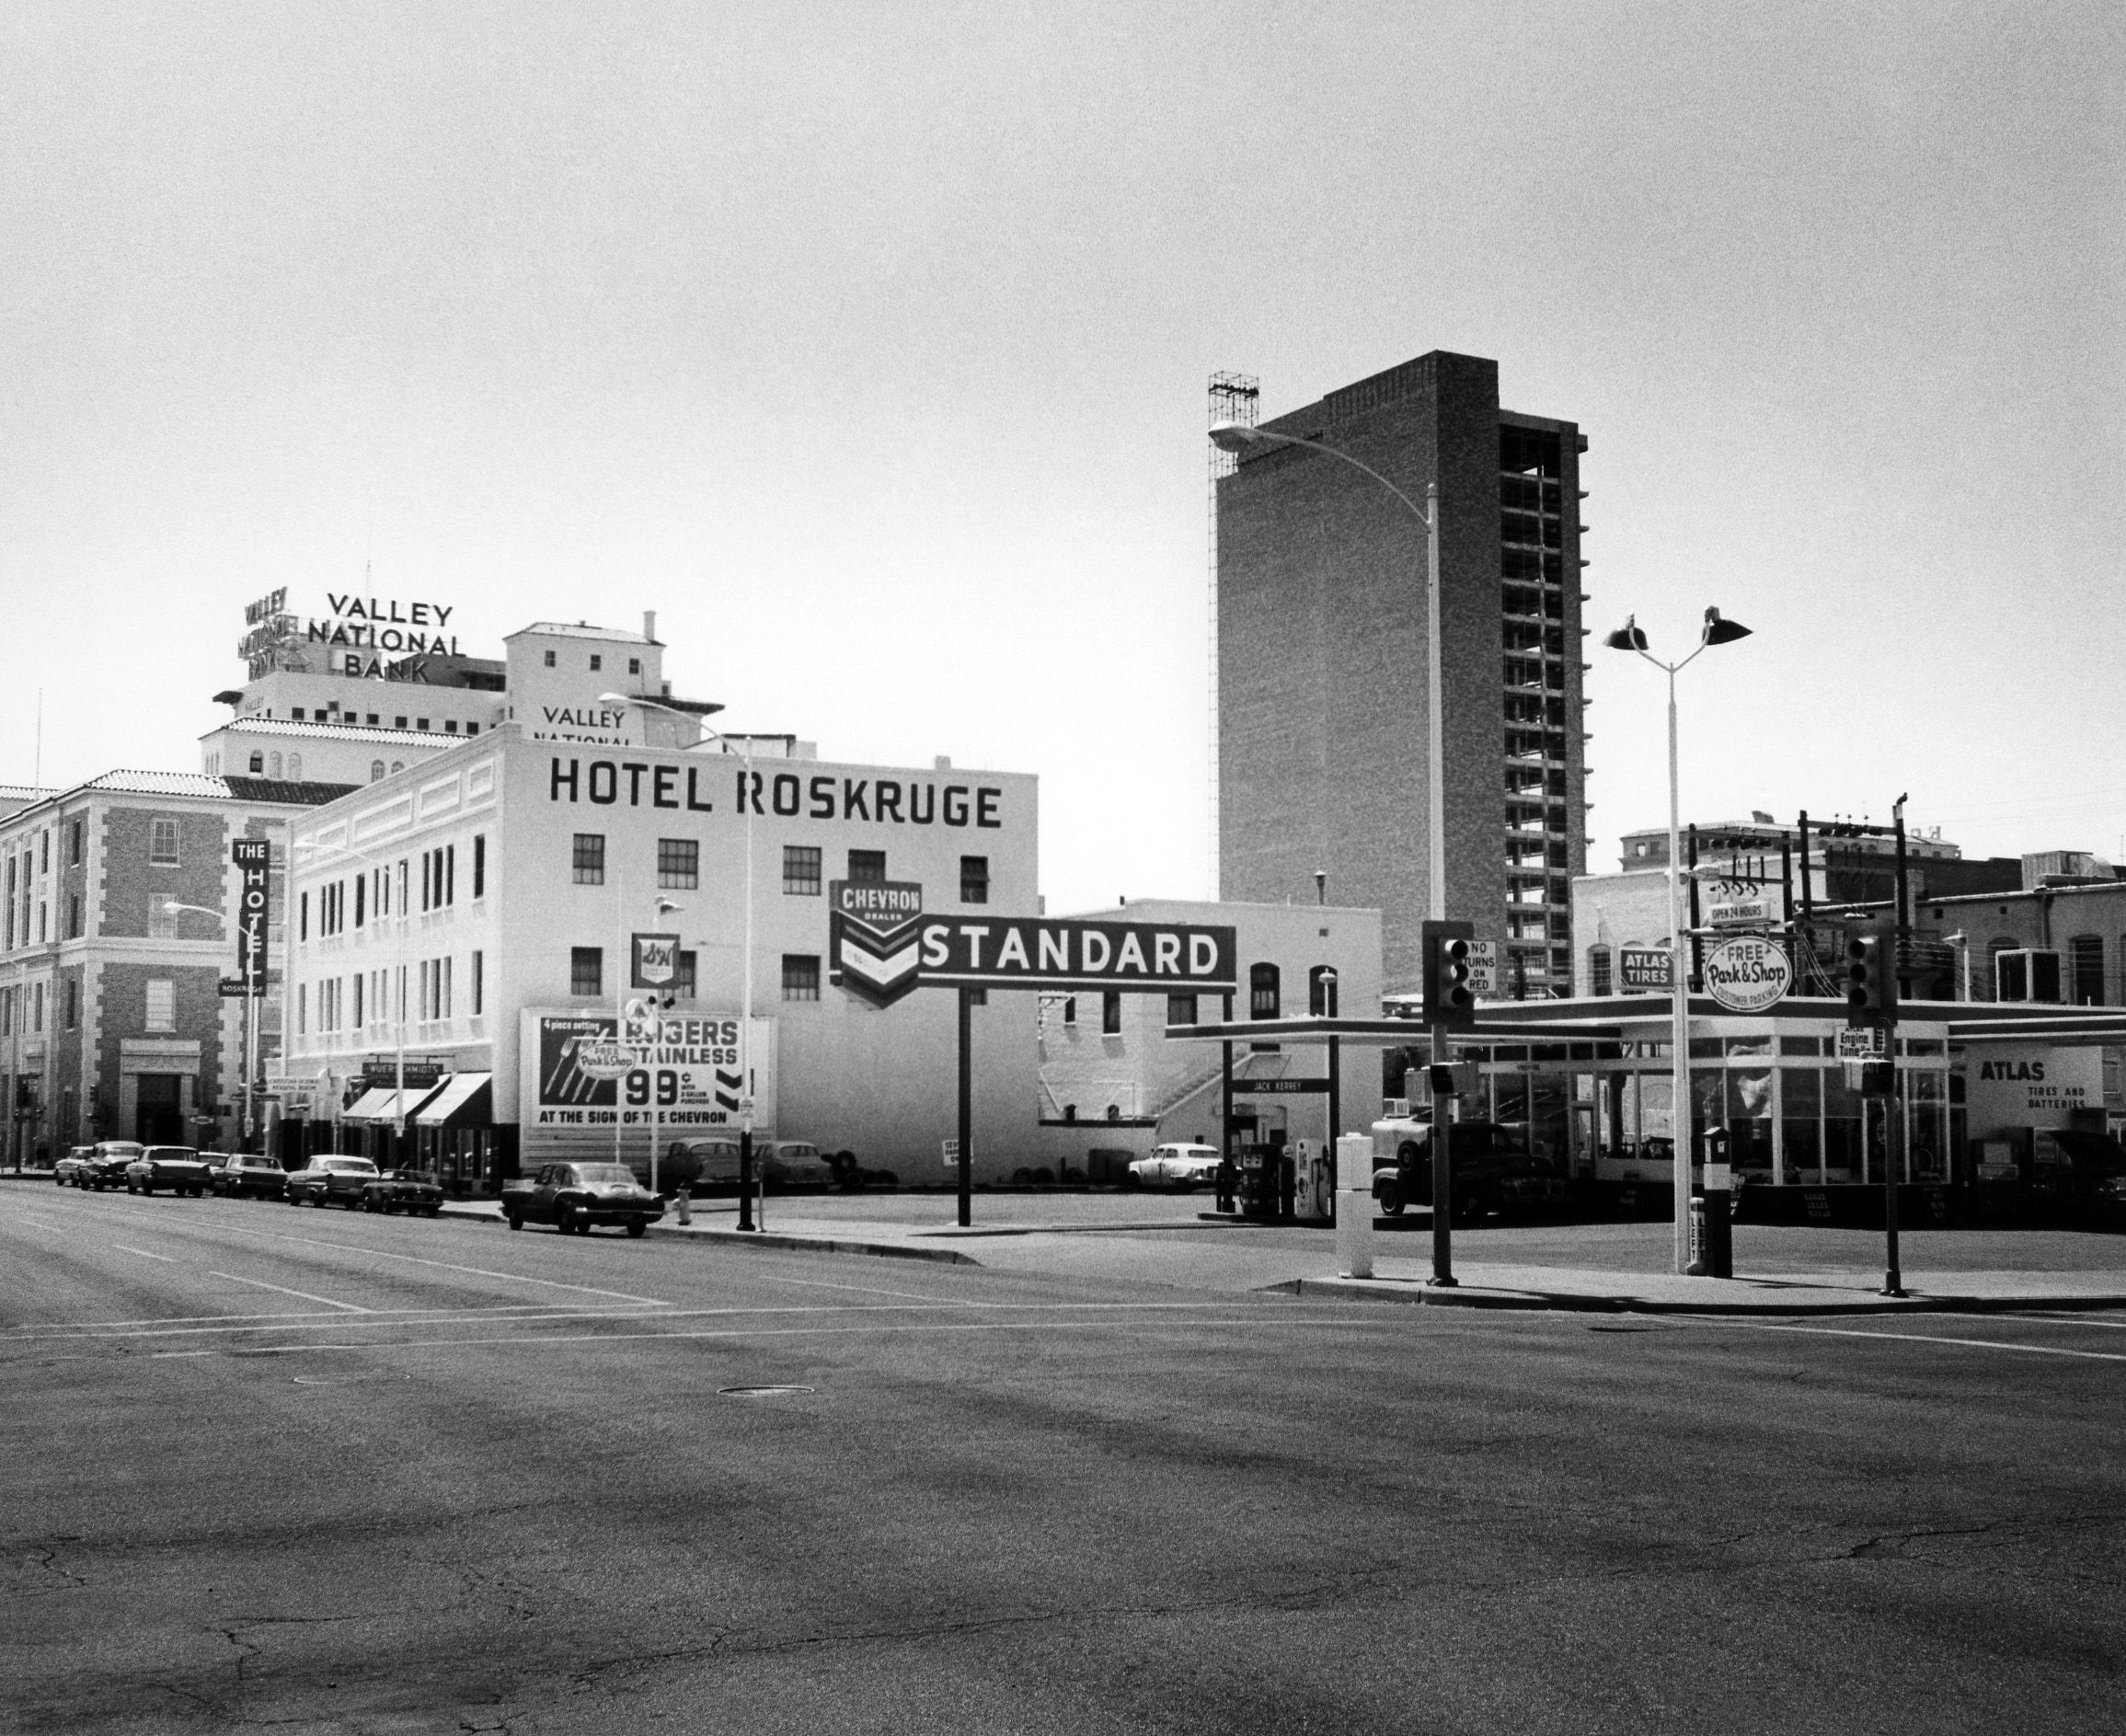 Chevron gas station and the original Federal Courthouse building